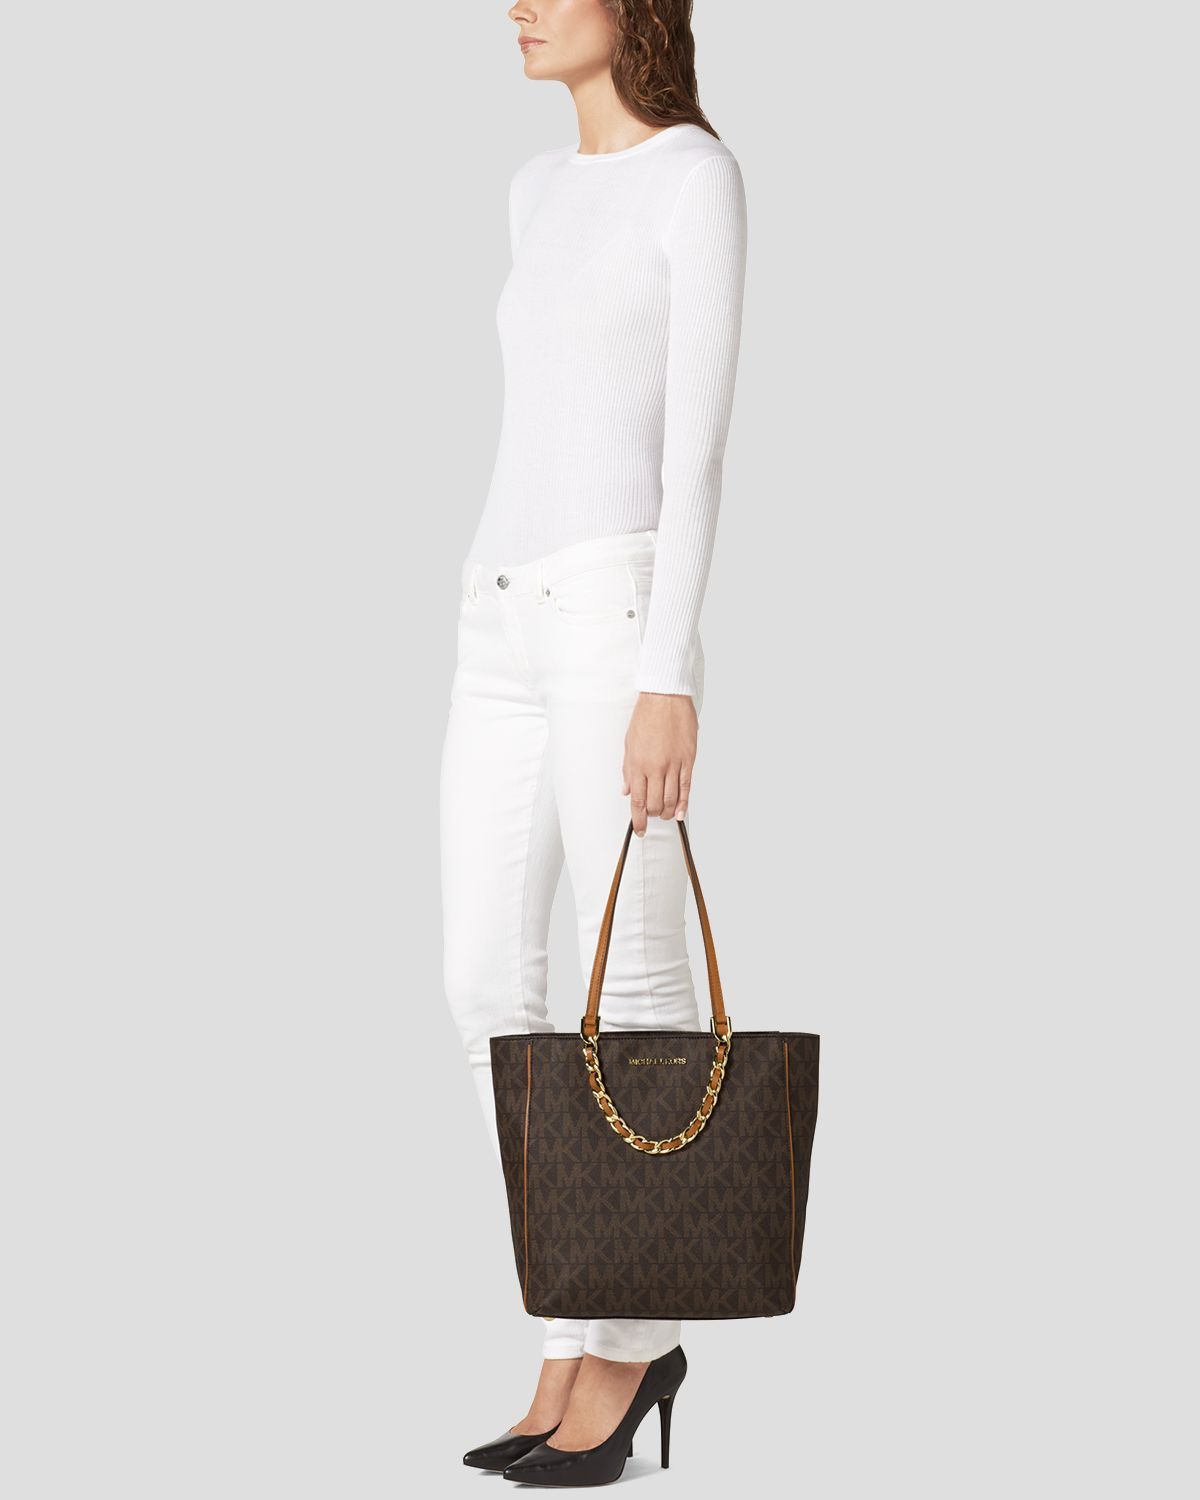 76e37d4cfe8d sale lyst michael michael kors tote harper large north south in brown dc549  85603